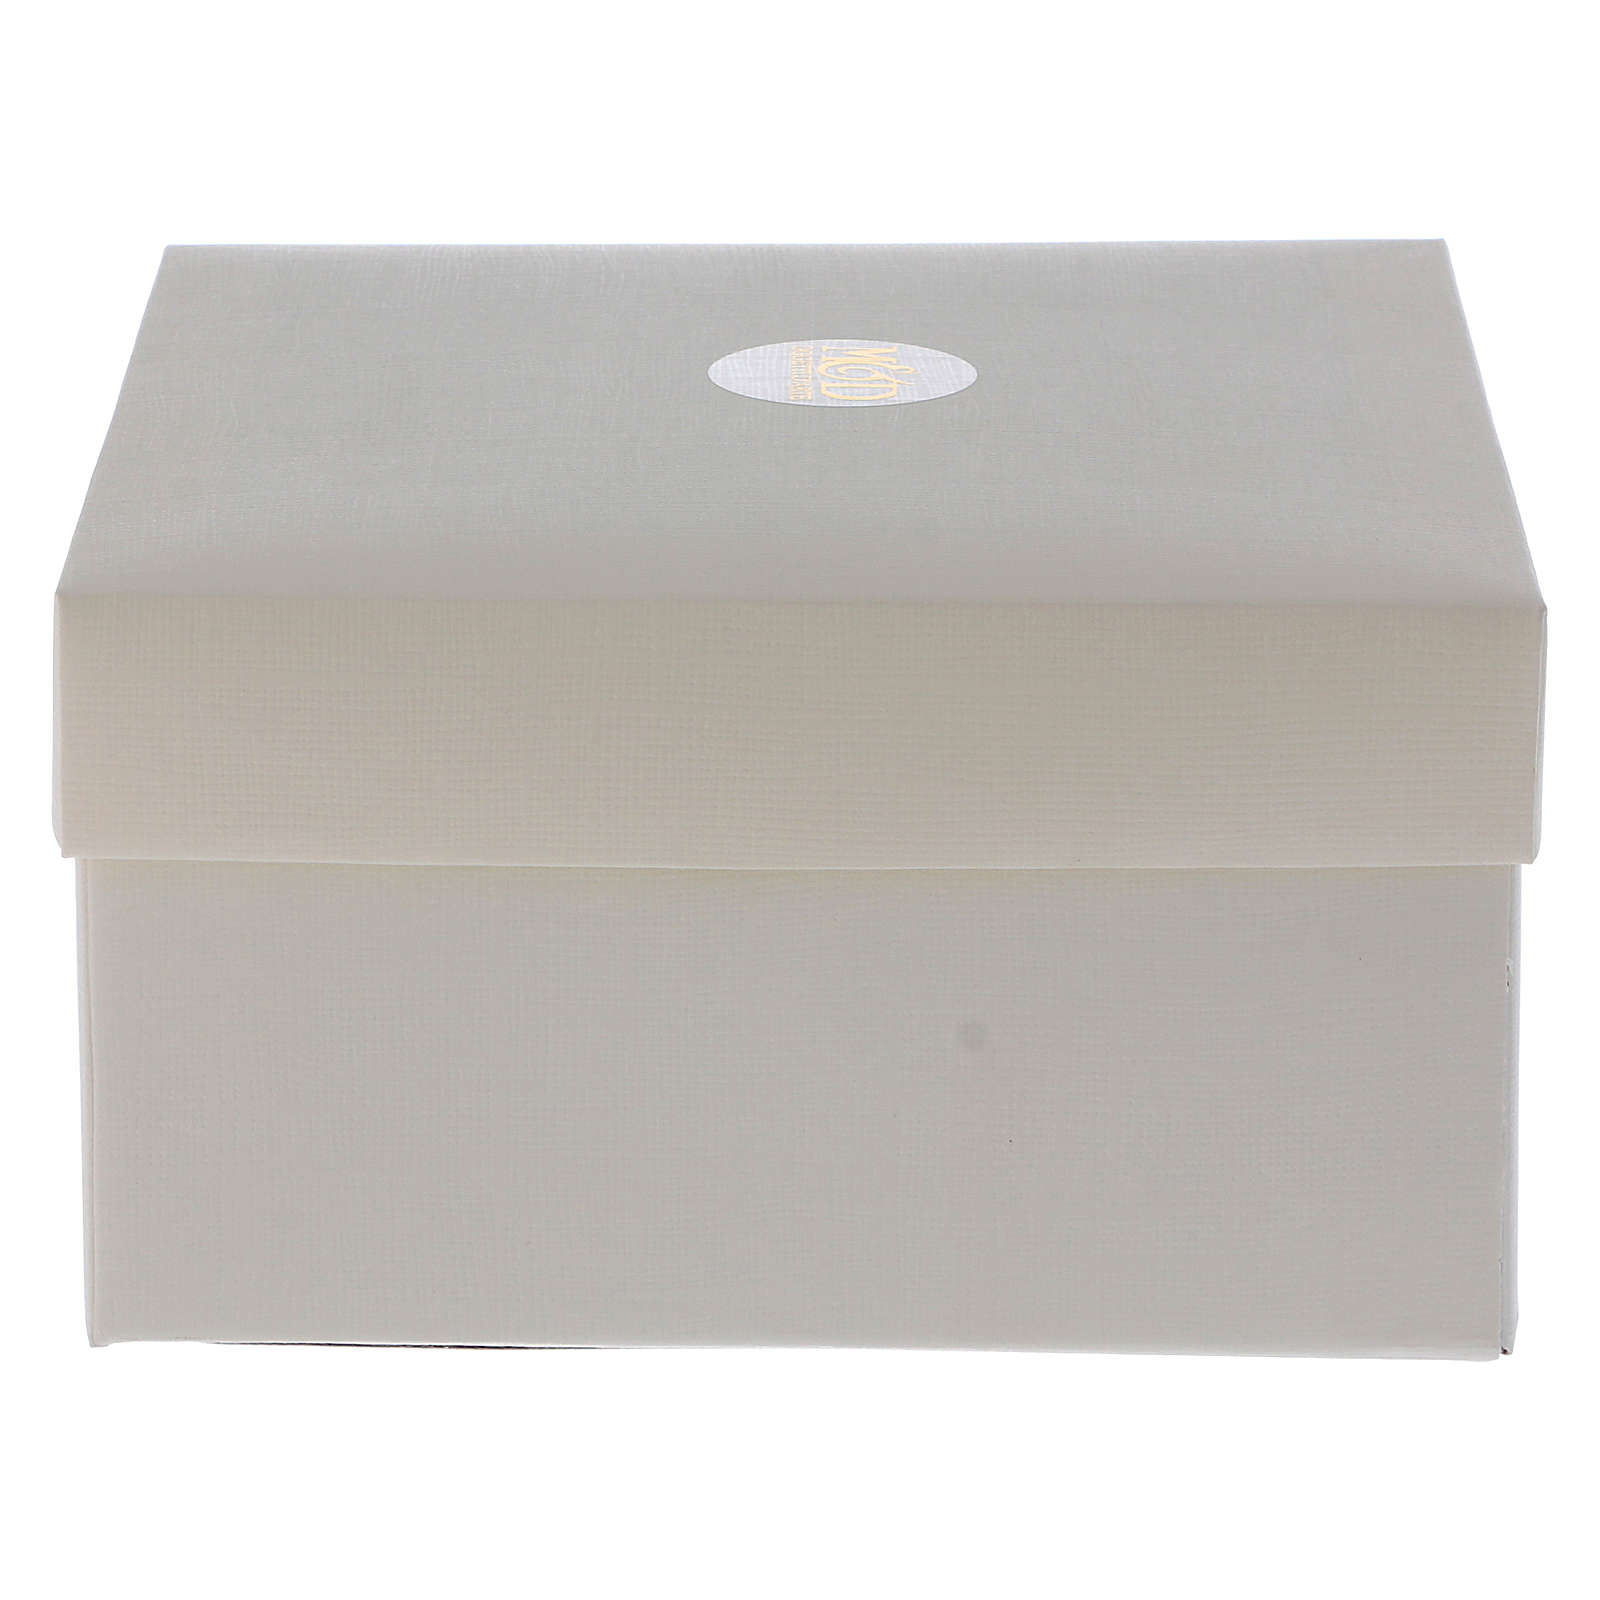 Box-shaped party favour for Holy Communion 5x5x5 cm 3